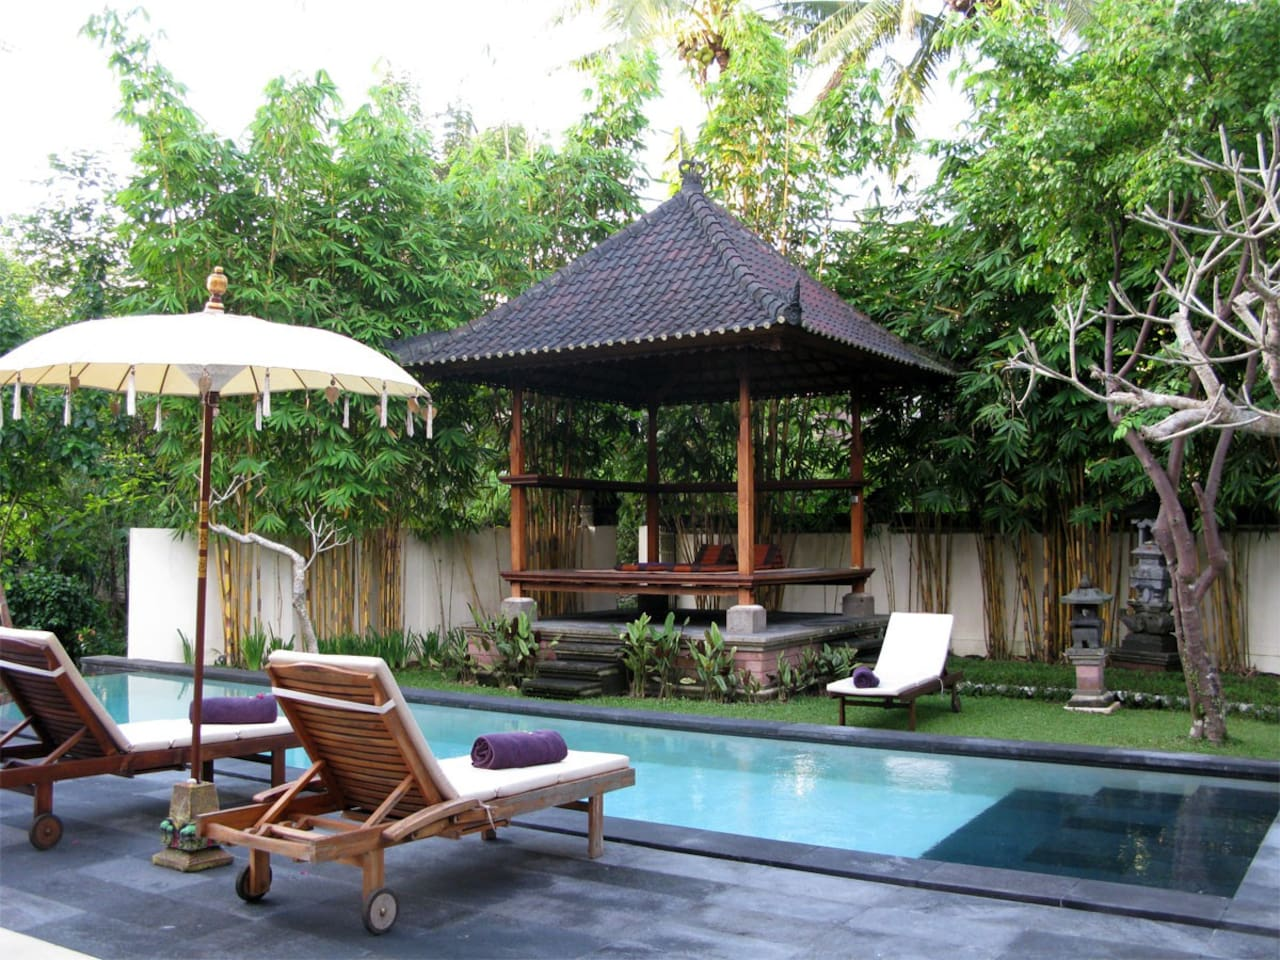 The villa's beautiful swimming pool and gazebo offer a relaxing retreat during your stay.